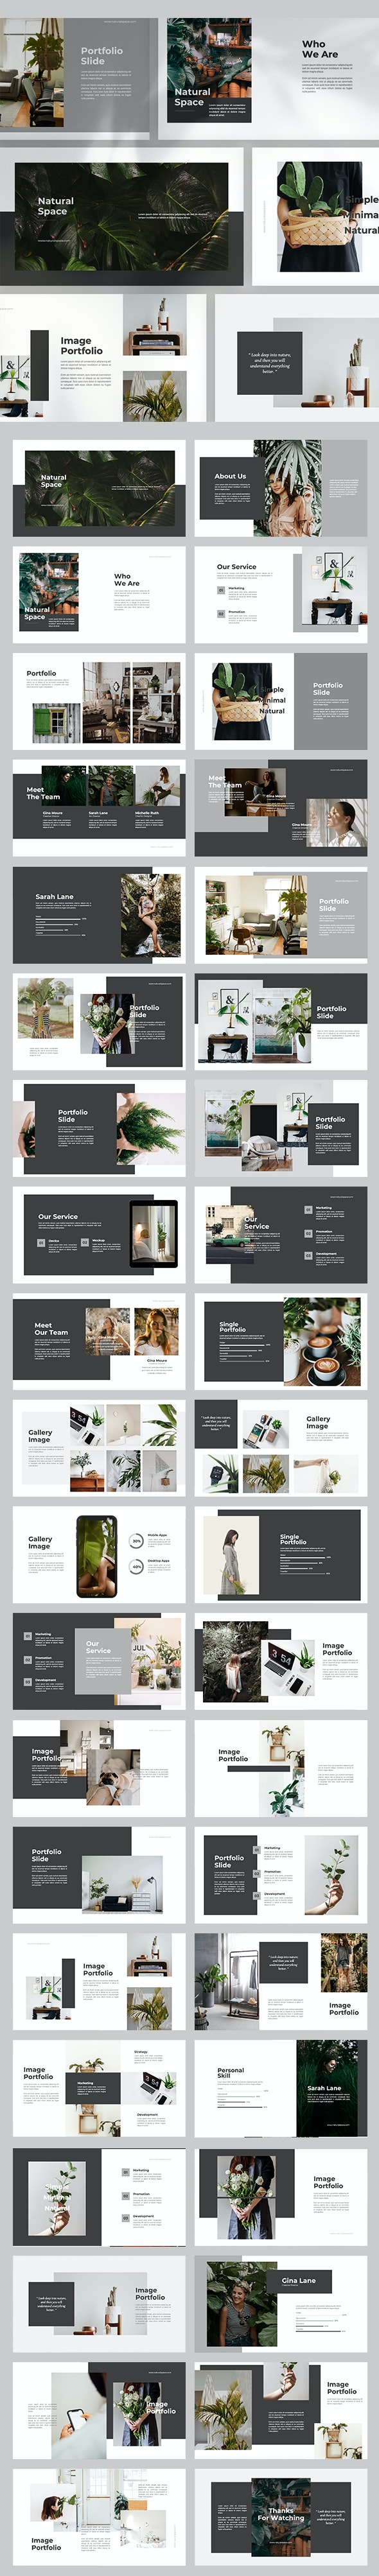 Natural Space Google Slide Template - Google Slides Presentation Templates